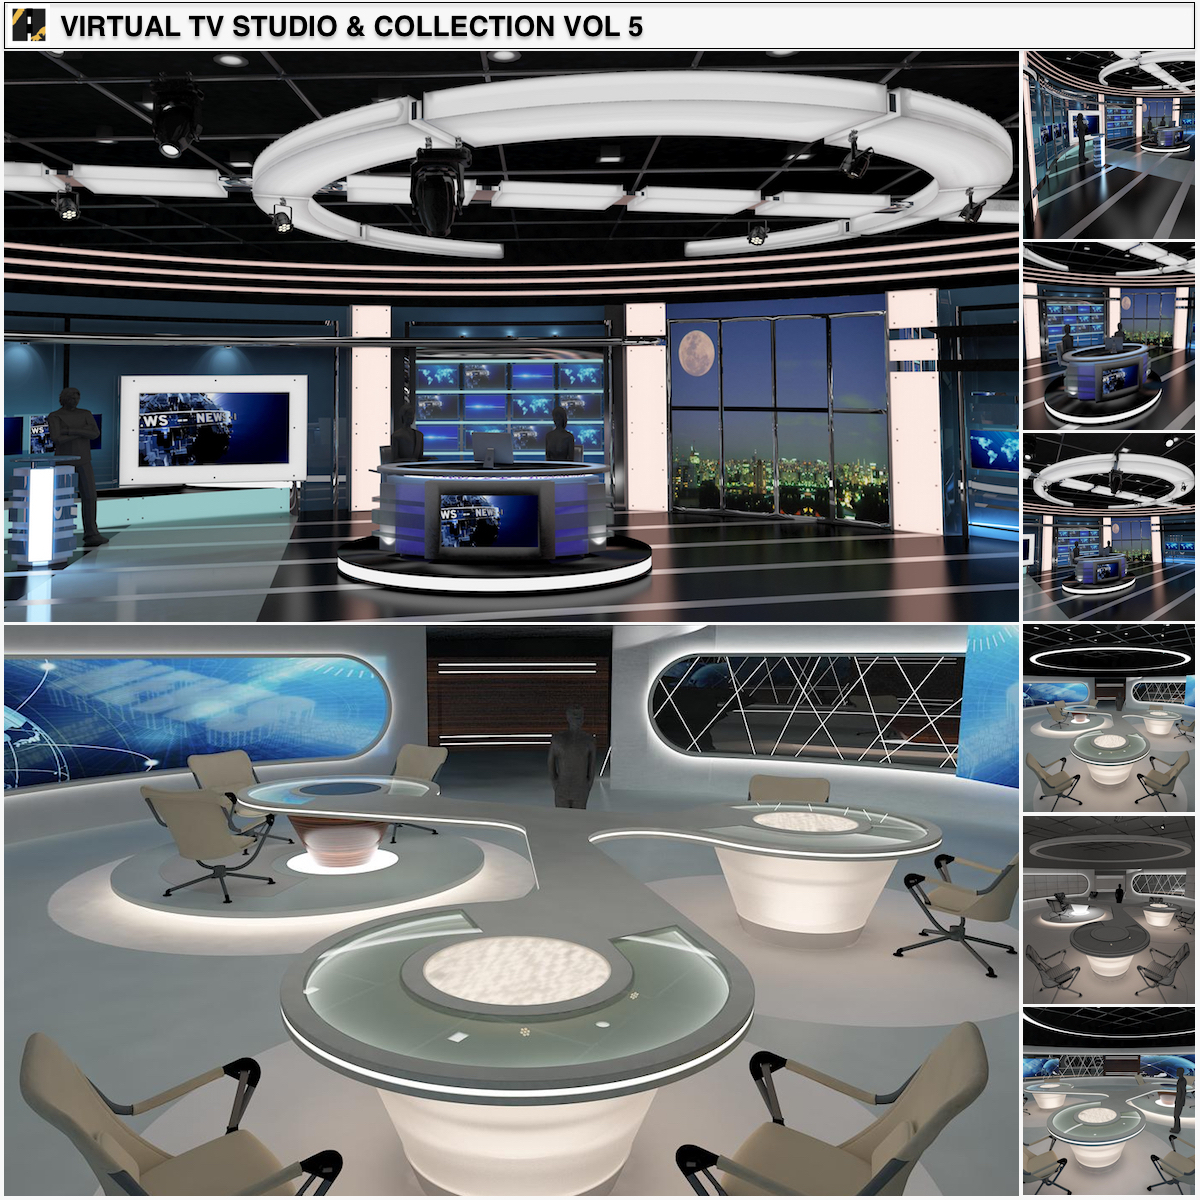 0-00-Virtual TV Studios Collection Vol 5